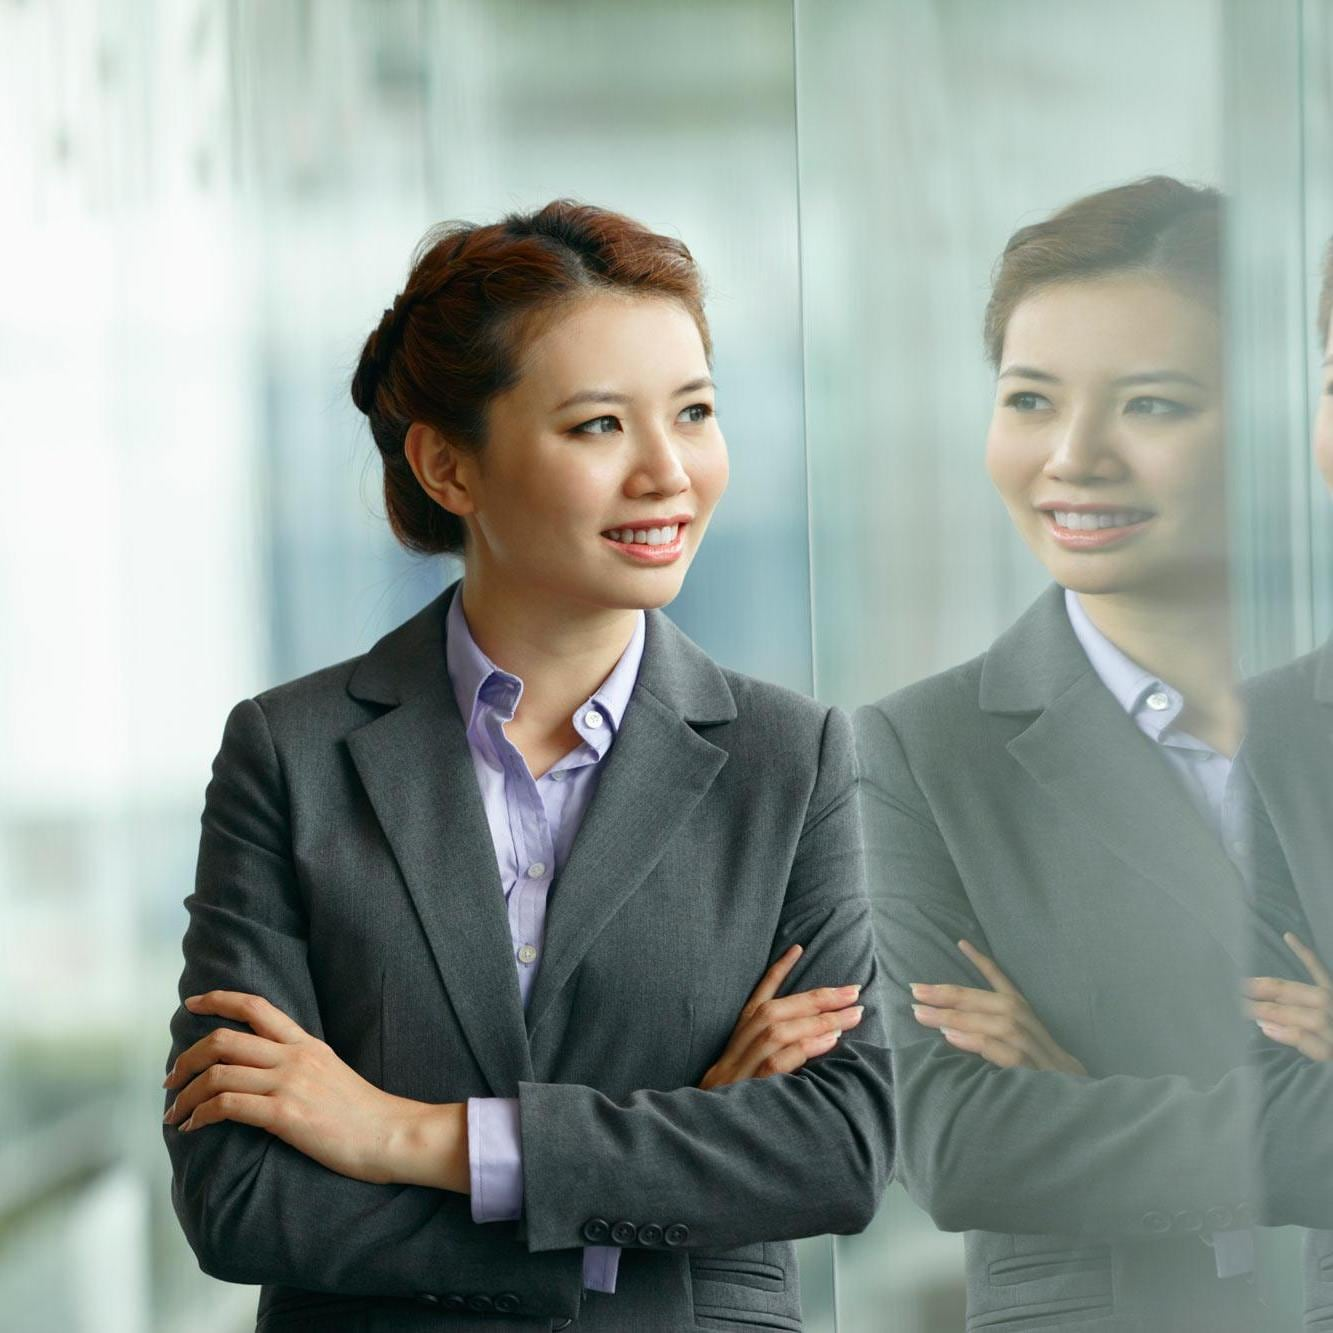 Business woman looking at her reflection